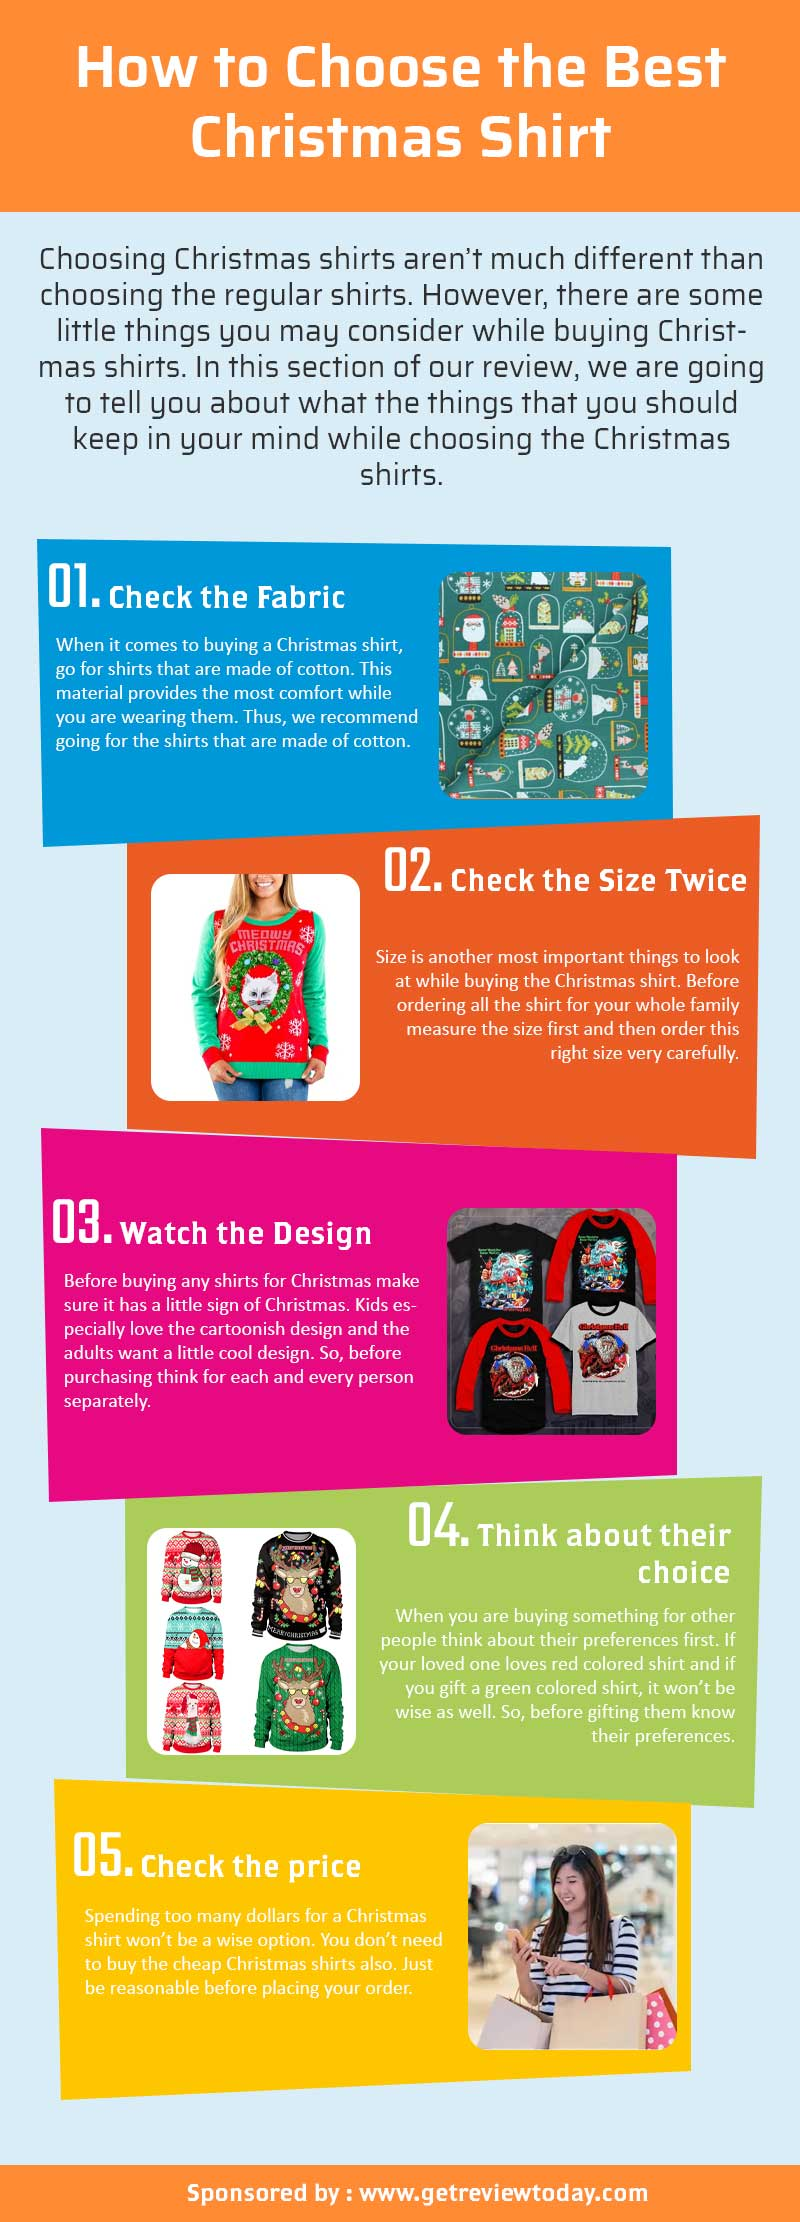 How to Choose the Best Christmas Shirts infographic